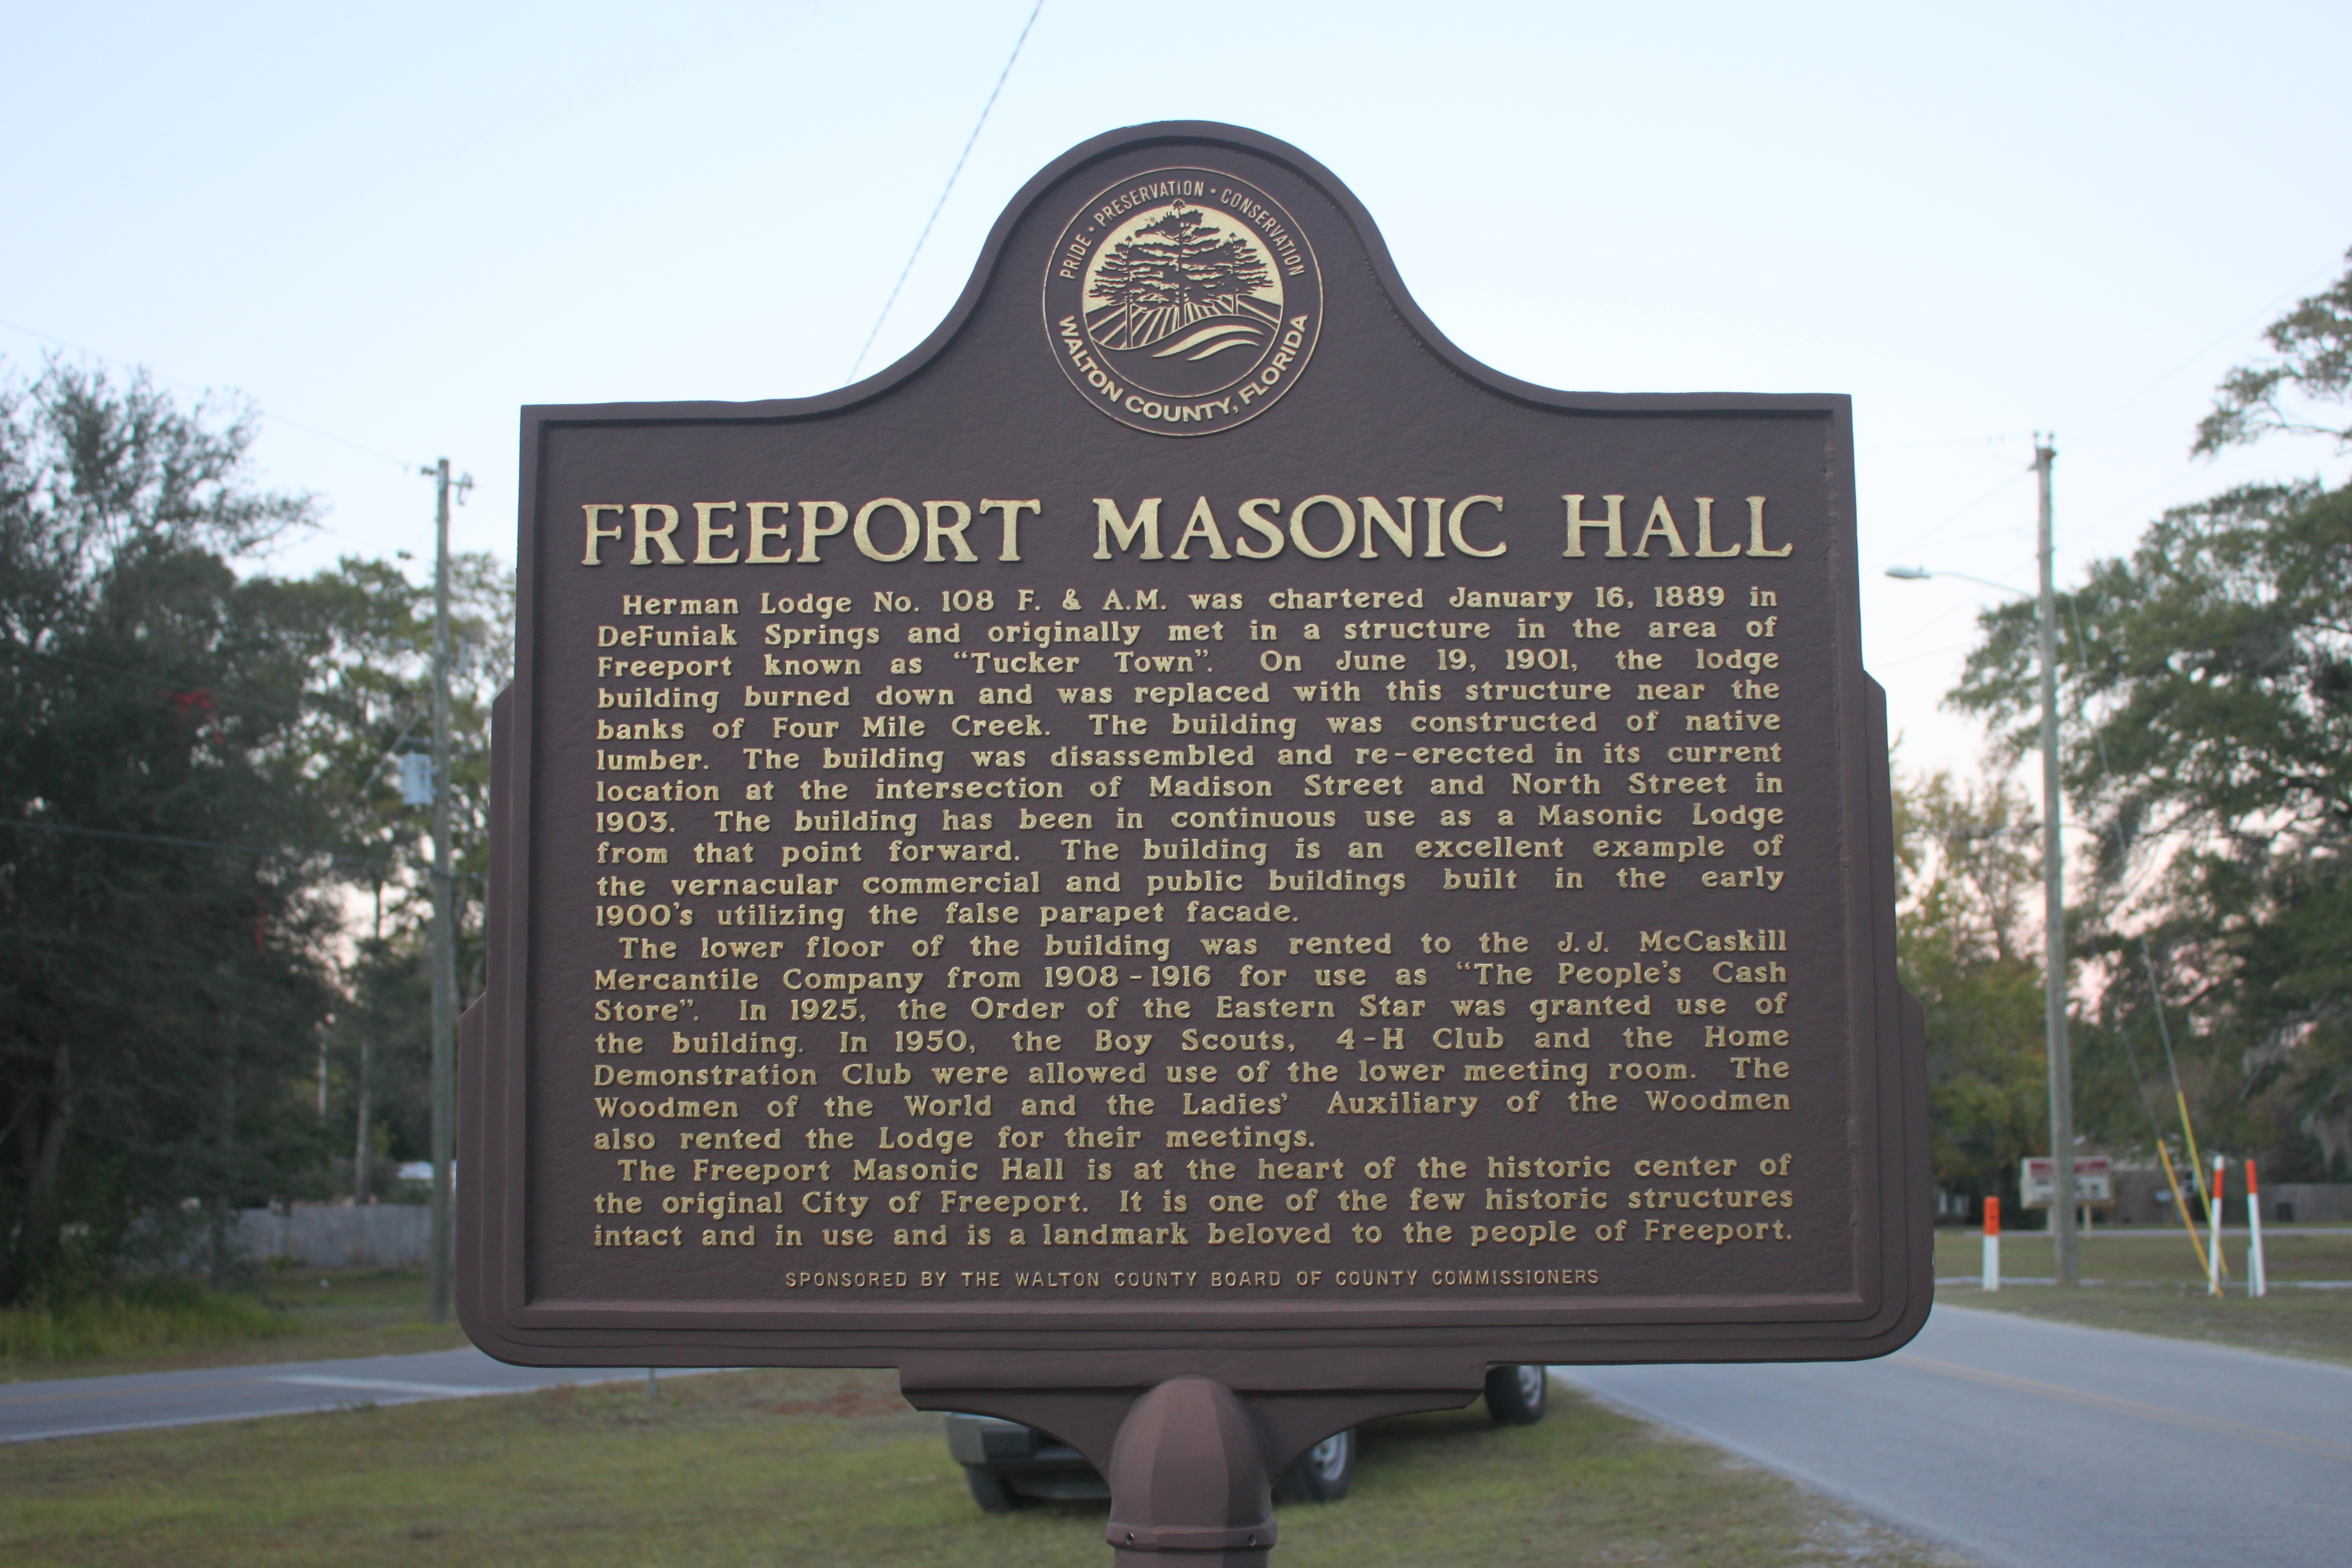 Freeport Masonic Hall Marker